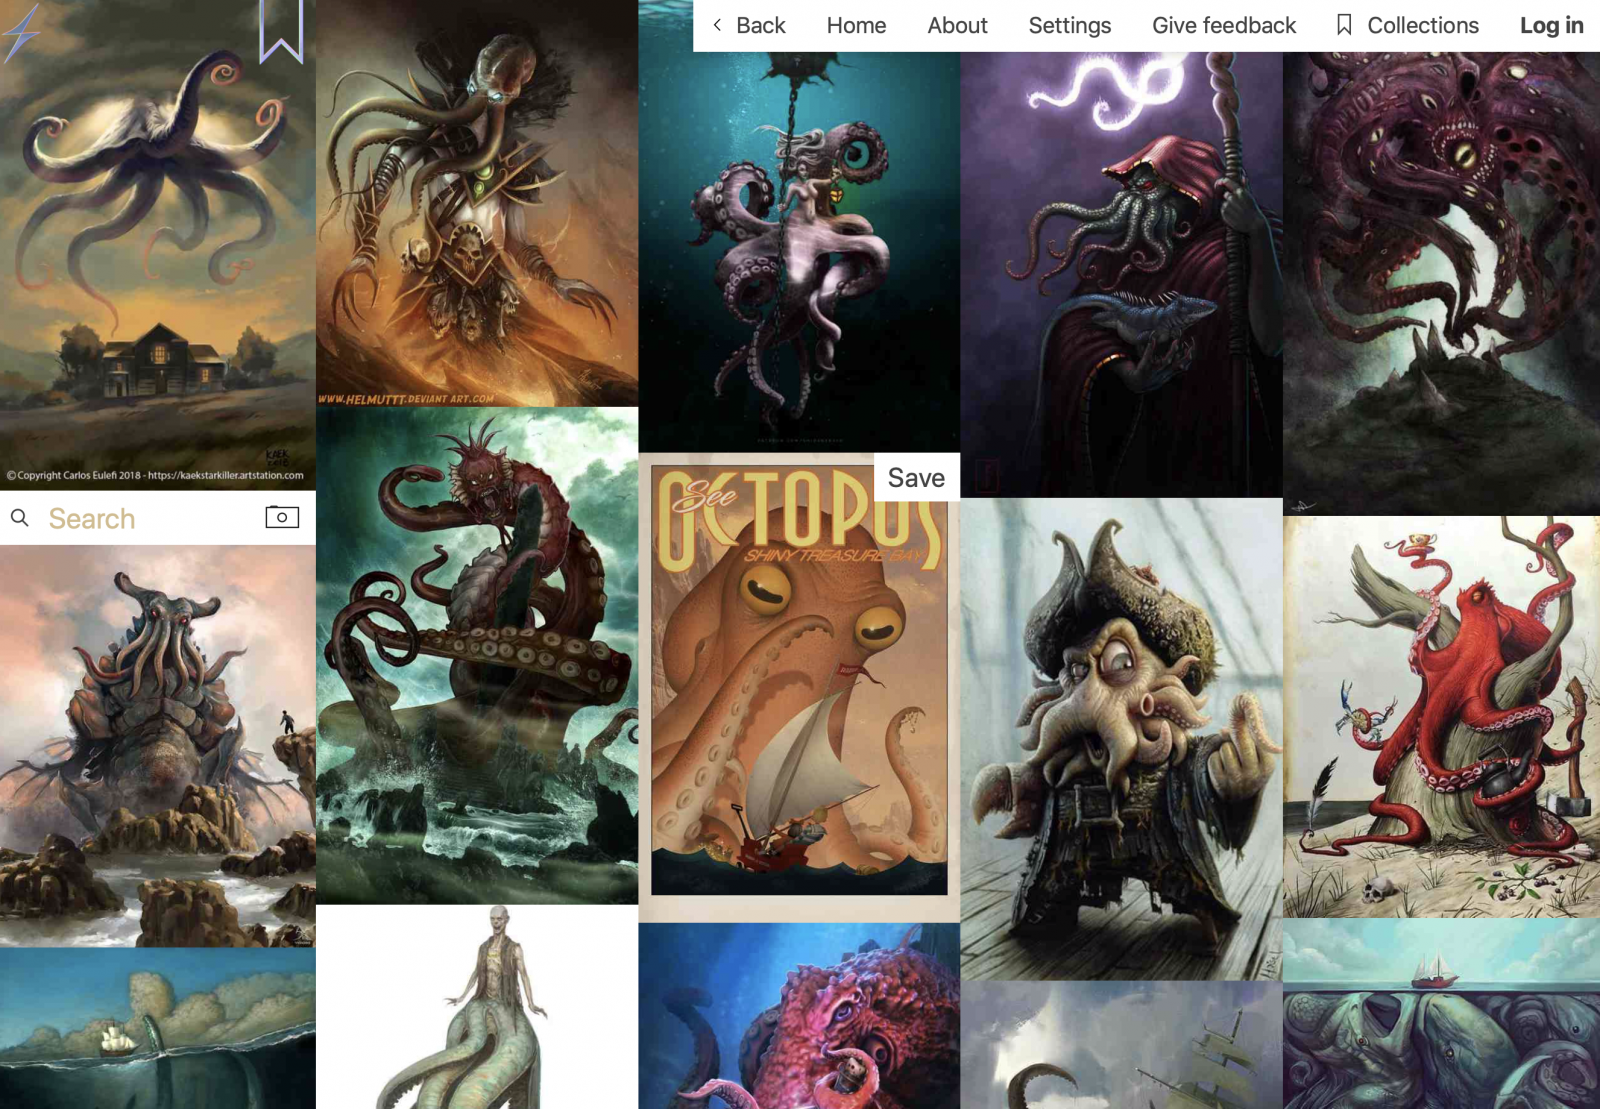 Screenshot of website showing many Cthulhu-related images